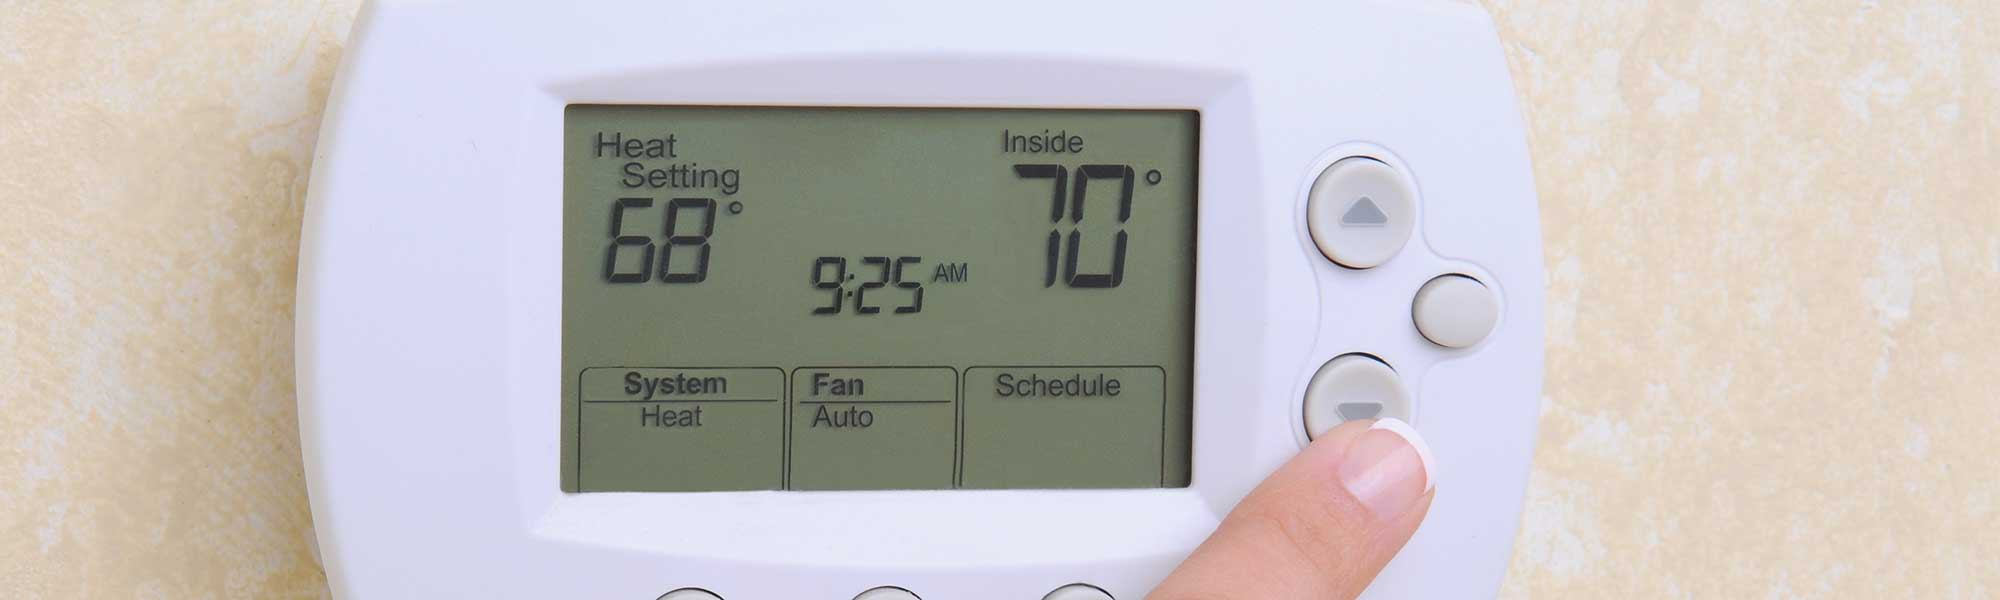 Call today for a free evaluation or for more information about a thermostat that would be right for you.